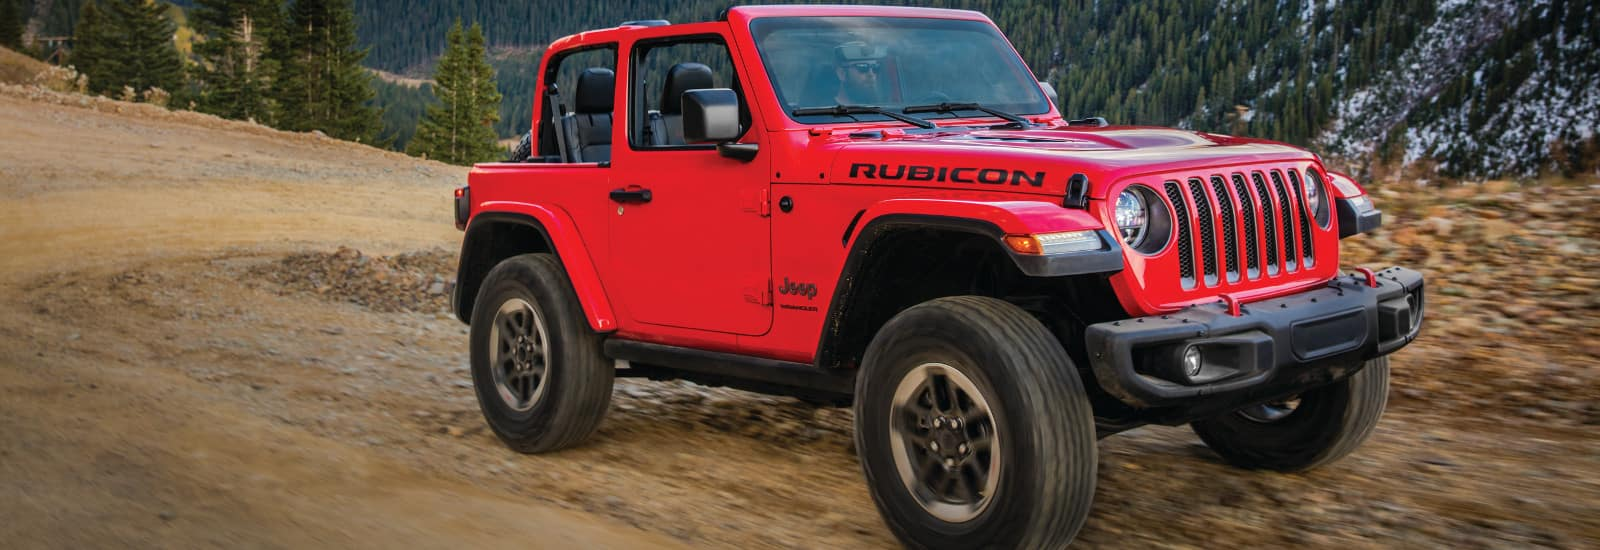 2019 Jeep Wrangler Trim Levels Sport Vs S Sahara Jk Brake Controller Wiring Diagram A Red Rubicon Driving Down Dirt Road